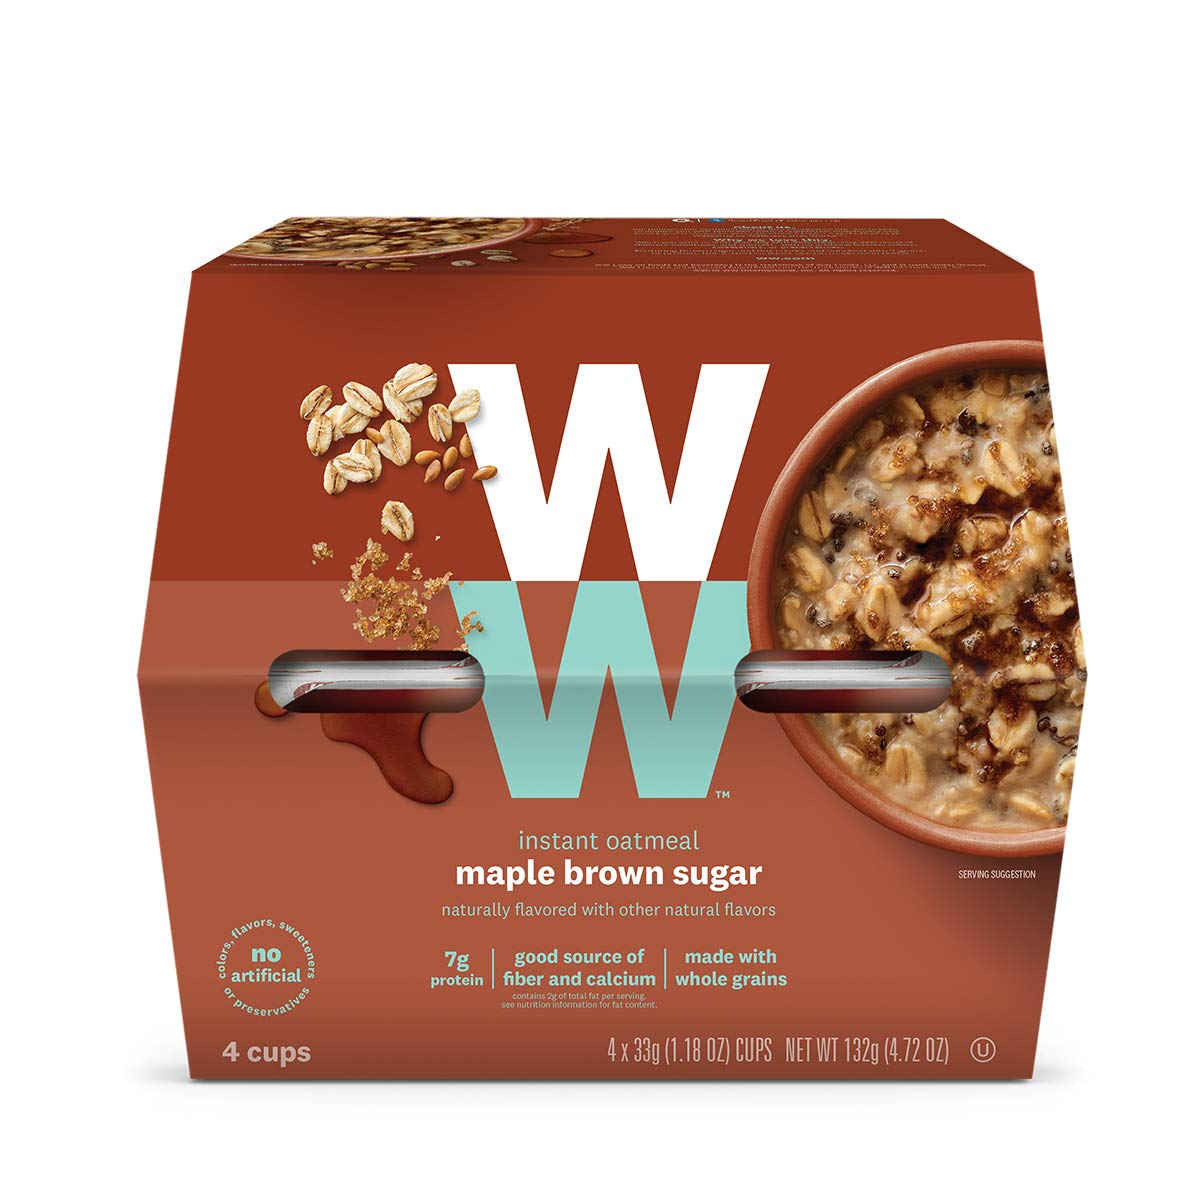 WW Maple Brown Sugar Instant Oatmeal - 3 SmartPoints - 1 Box (4 Count) - Weight Watchers Reimagined